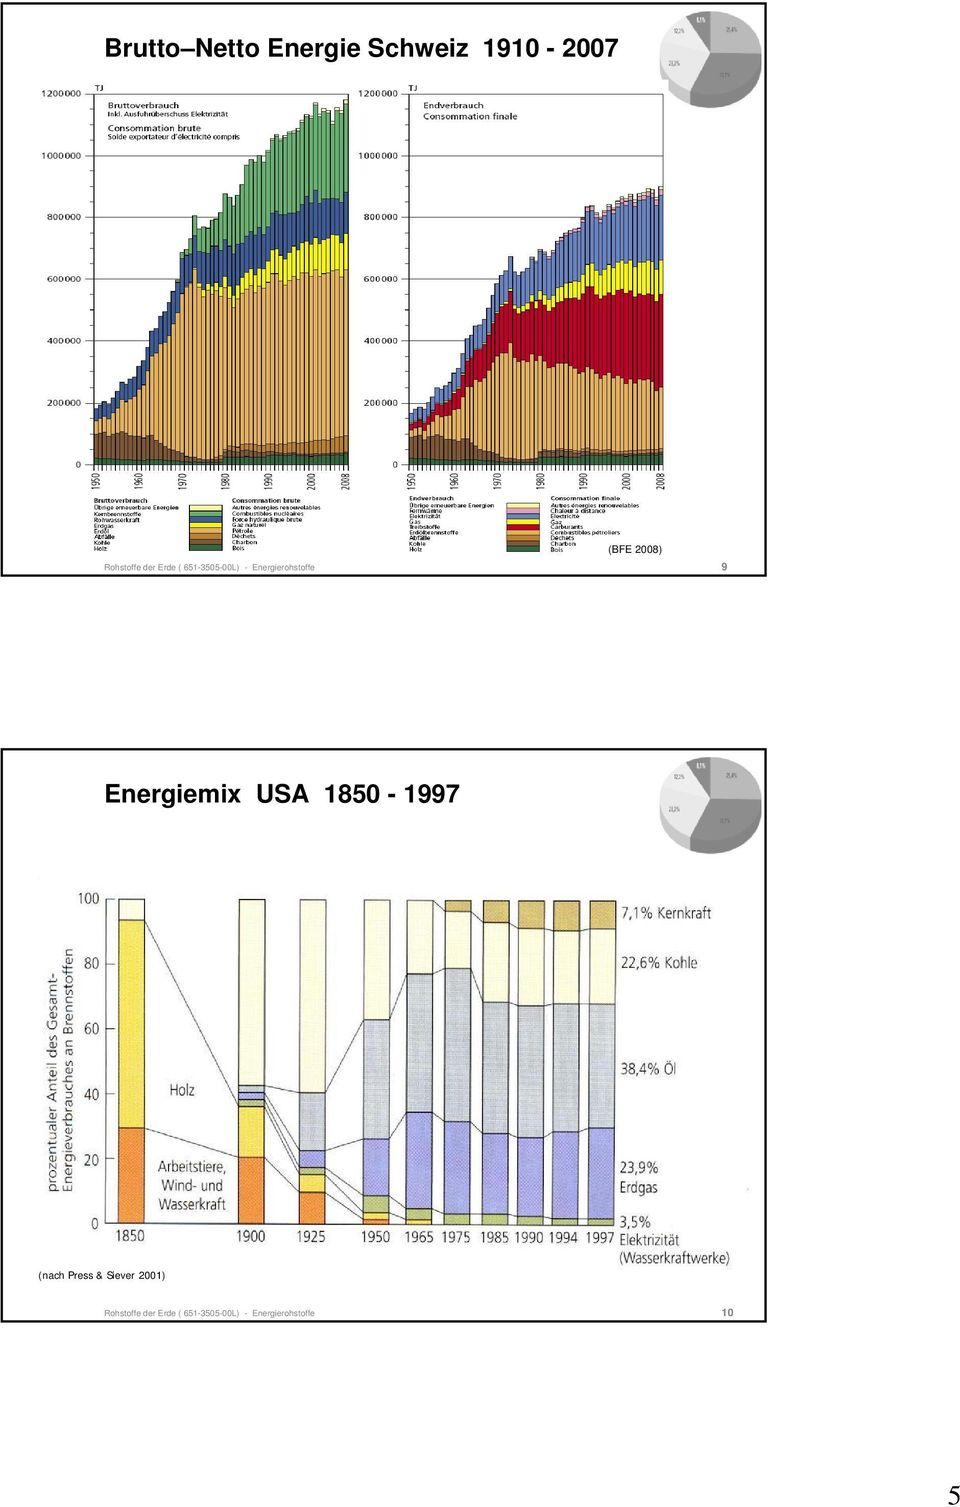 9 Energiemix USA 1850-1997 (nach Press & Siever 2001)